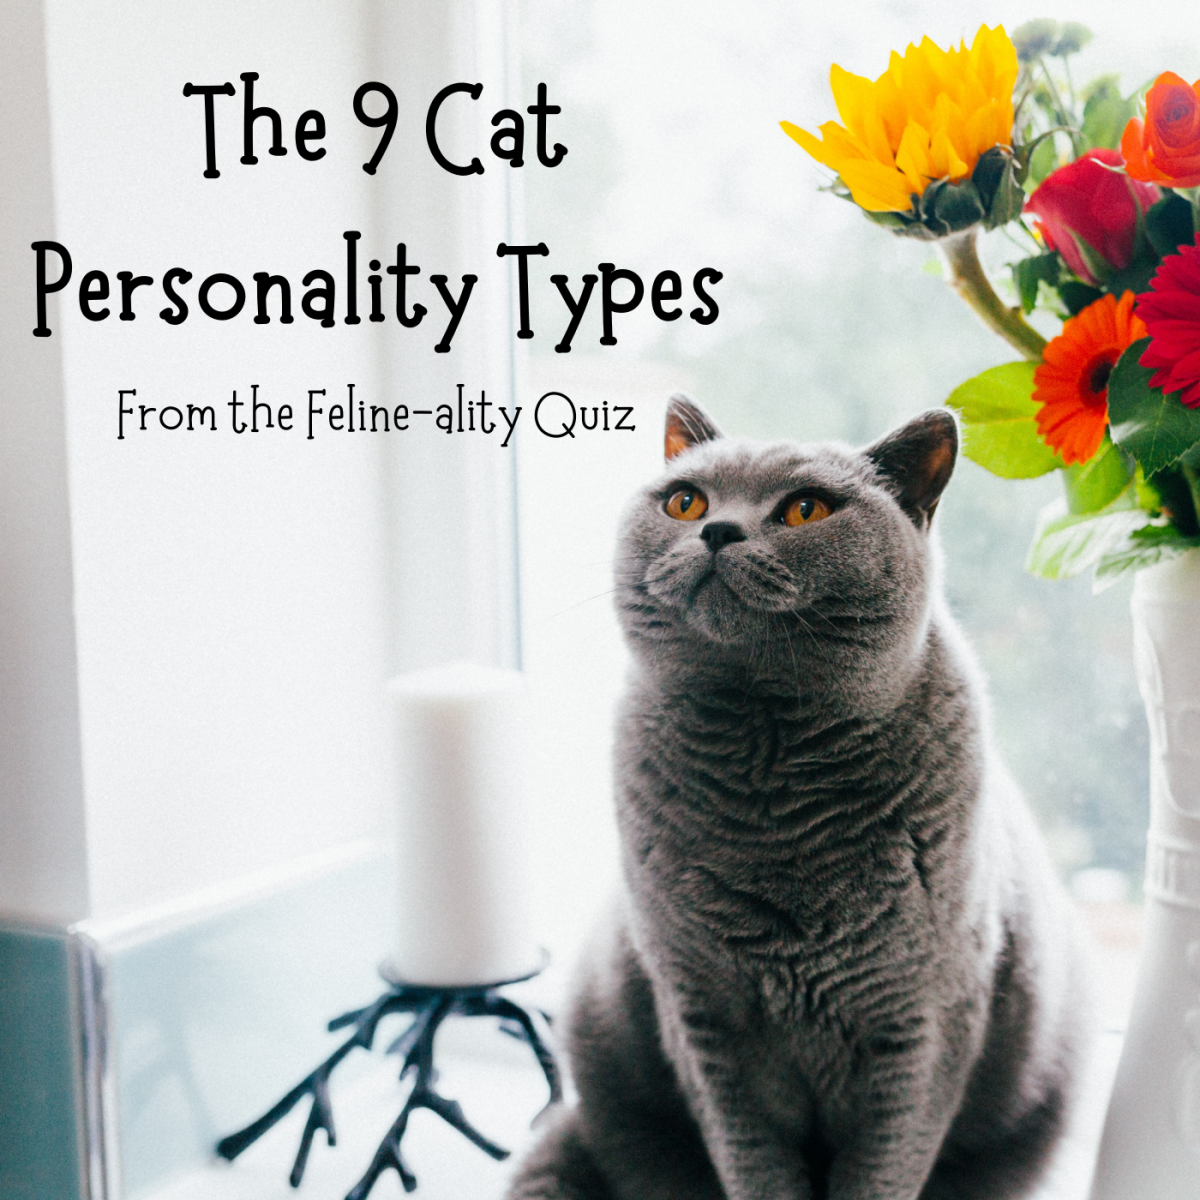 This cat probably has an orange personality type—but what does that mean? Learn more about the Meet Your Match program and the Feline-ality assessment and what they reveal about cats.